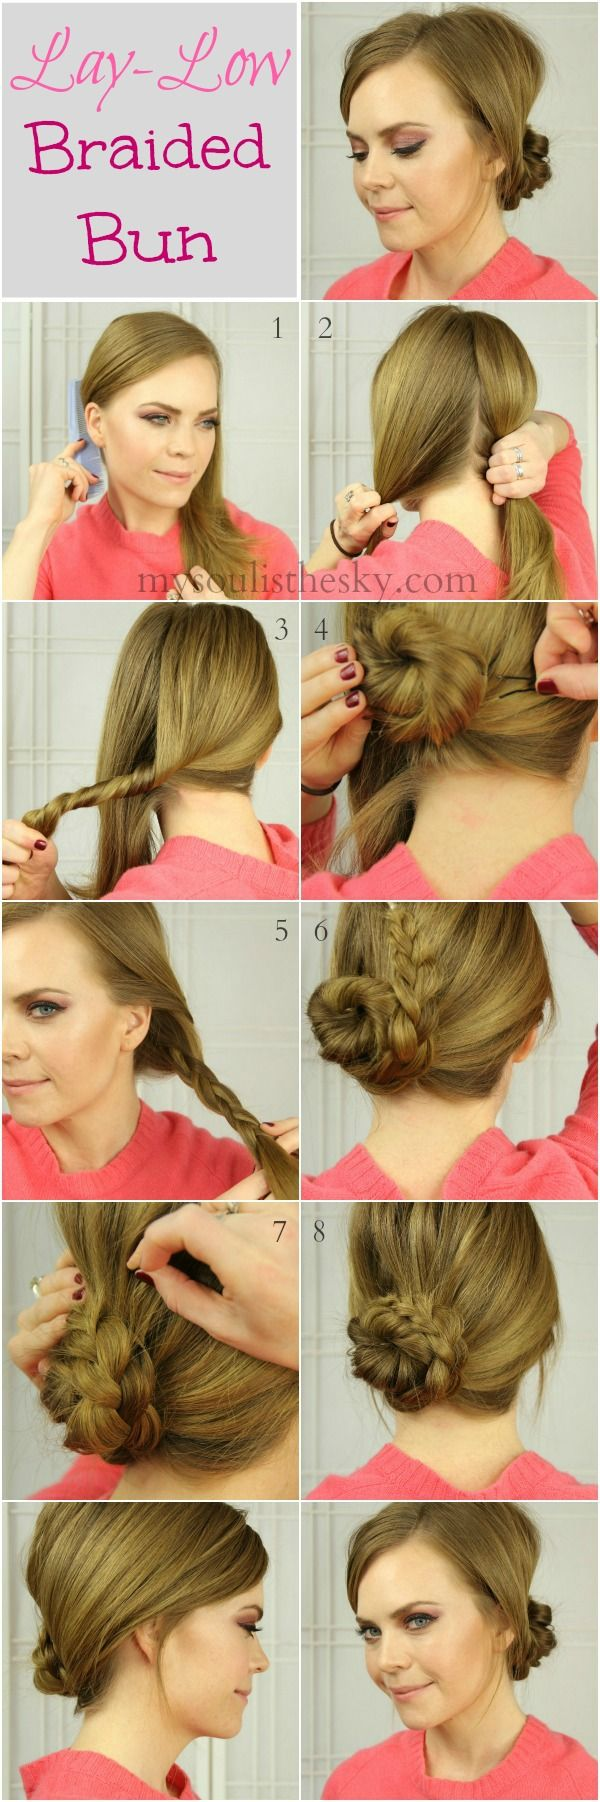 Easy Lay Low Braided Bun Hair Styles Holiday Hairstyles Long Hair Styles